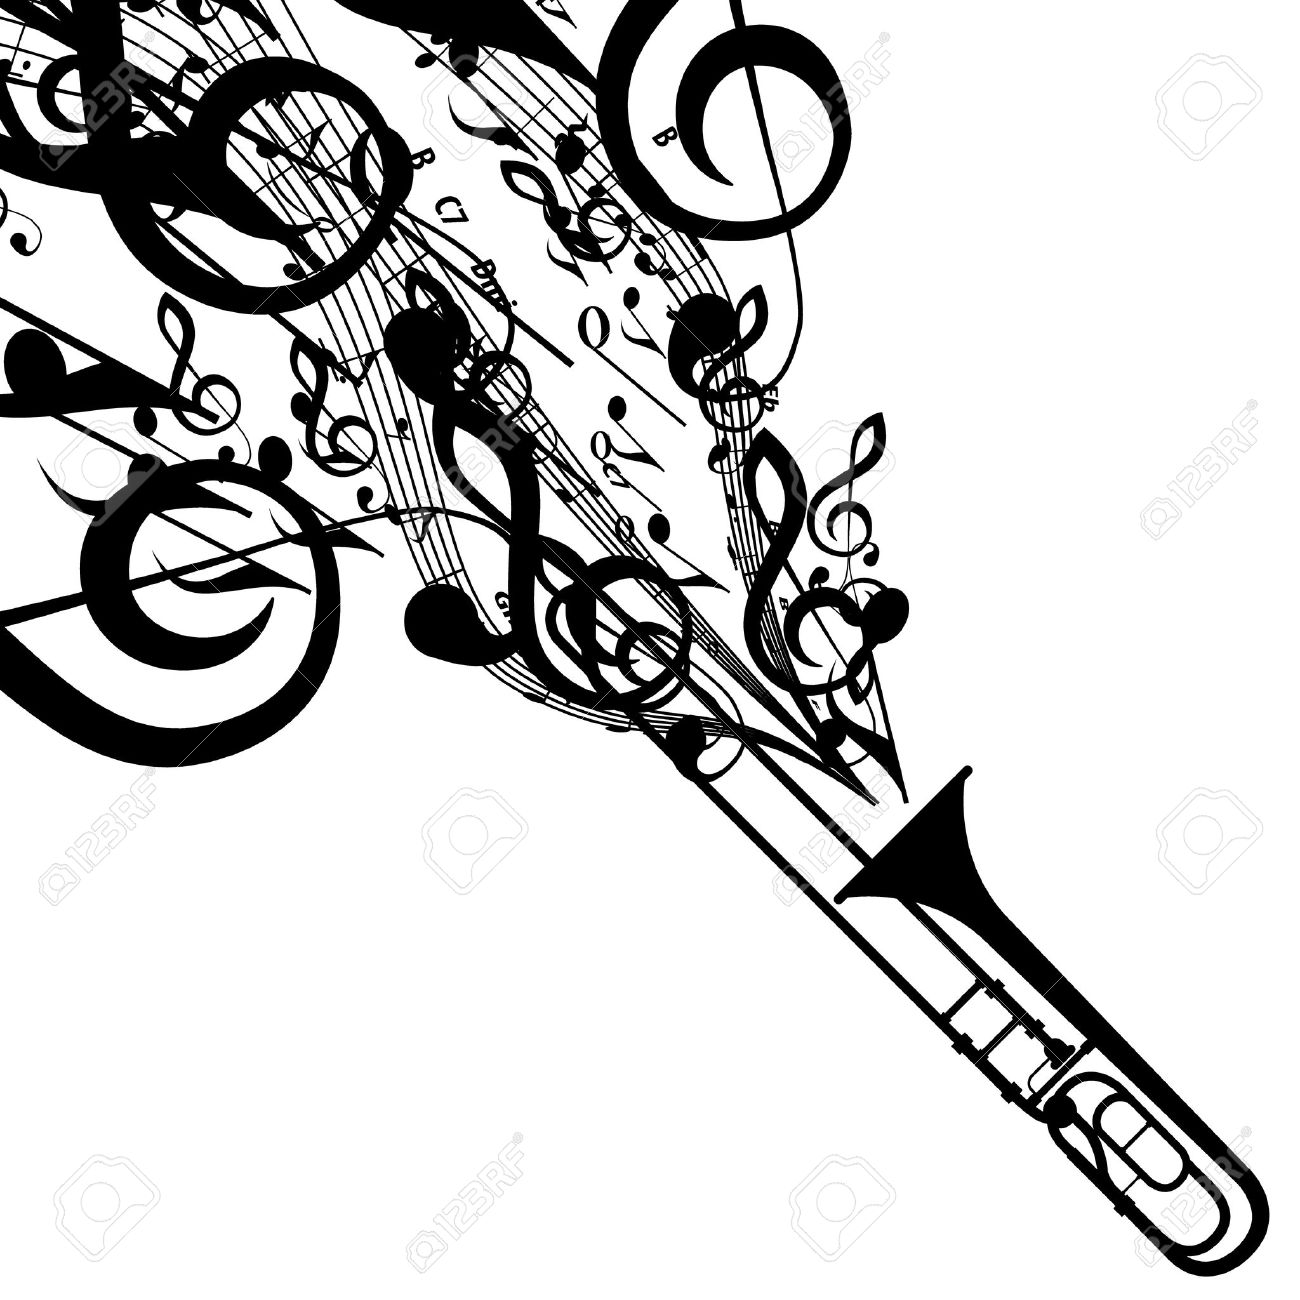 Trombone Stock Photos. Royalty Free Trombone Images And Pictures